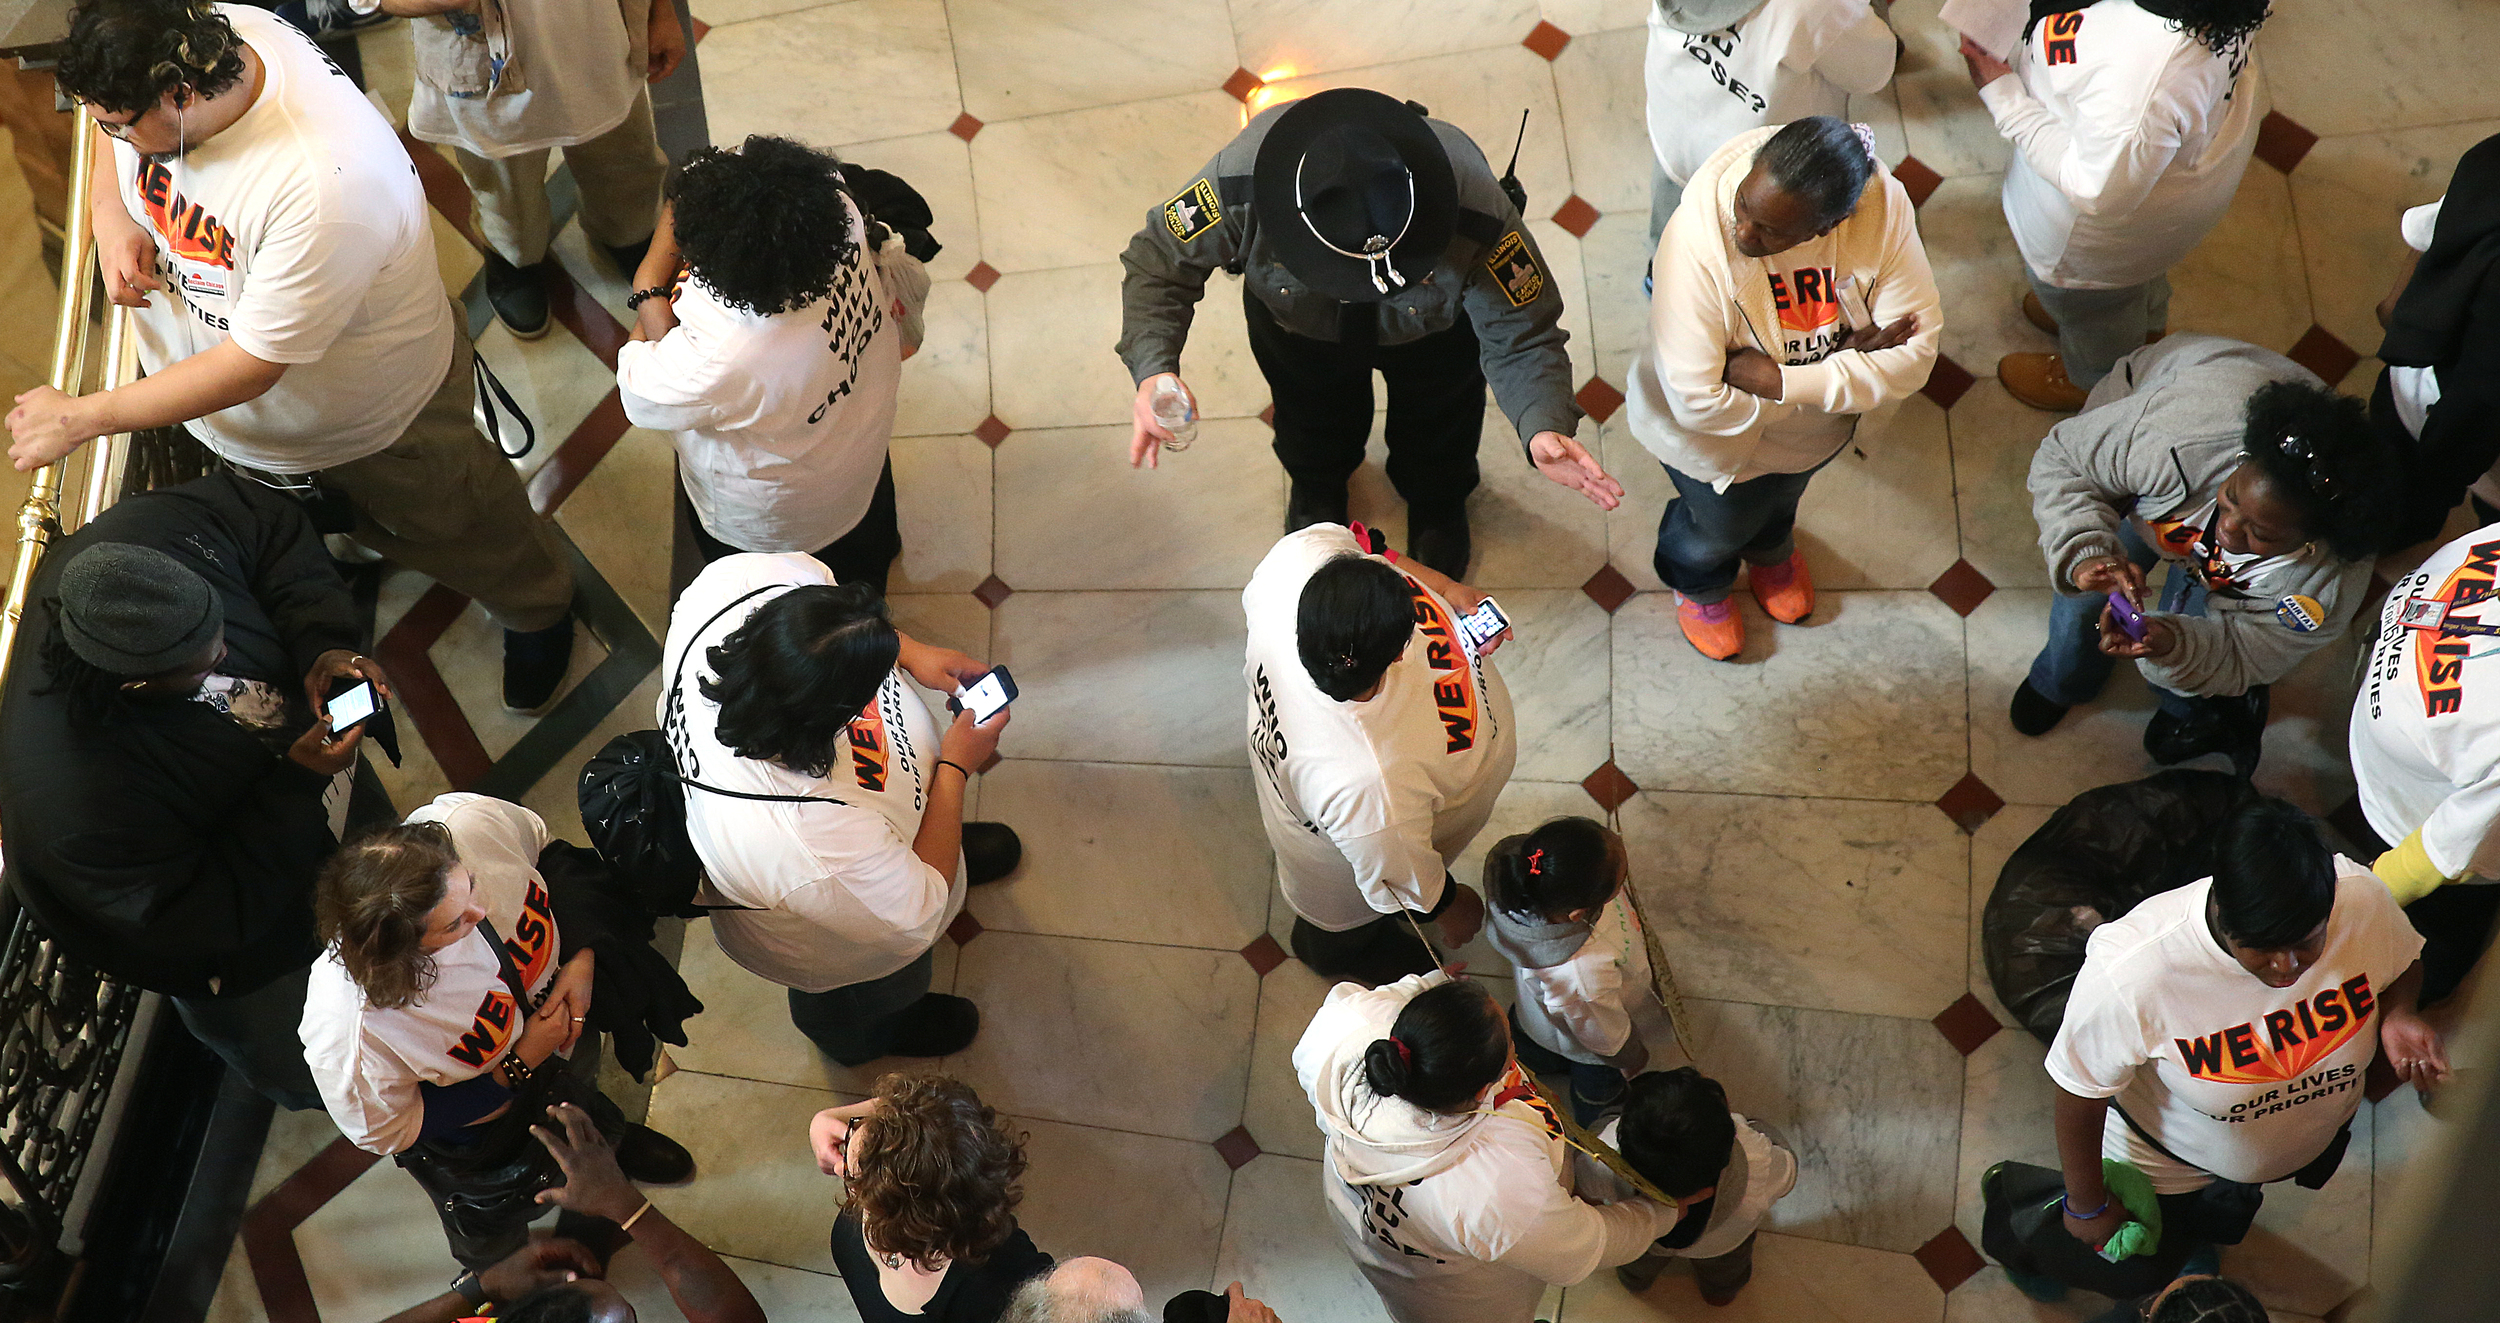 """A Secretary of State police officiers clears a path through protestors inside the State Capitol building in Springfield on Wed. March 11, 2015. As part of """"We Rise"""", a national day of action targeting state budget cuts, several thousand people from faith, community and labor organizations including adults, children and clergy affected by Gov. Bruce Rauner's proposed cuts gathered in Springfield to protest. The event began with a rally inside the Capitol building followed by a march to the governor's mansion where a mock """"funeral"""" for the """"99%"""" took place. David Spencer/The State Journal-Register"""